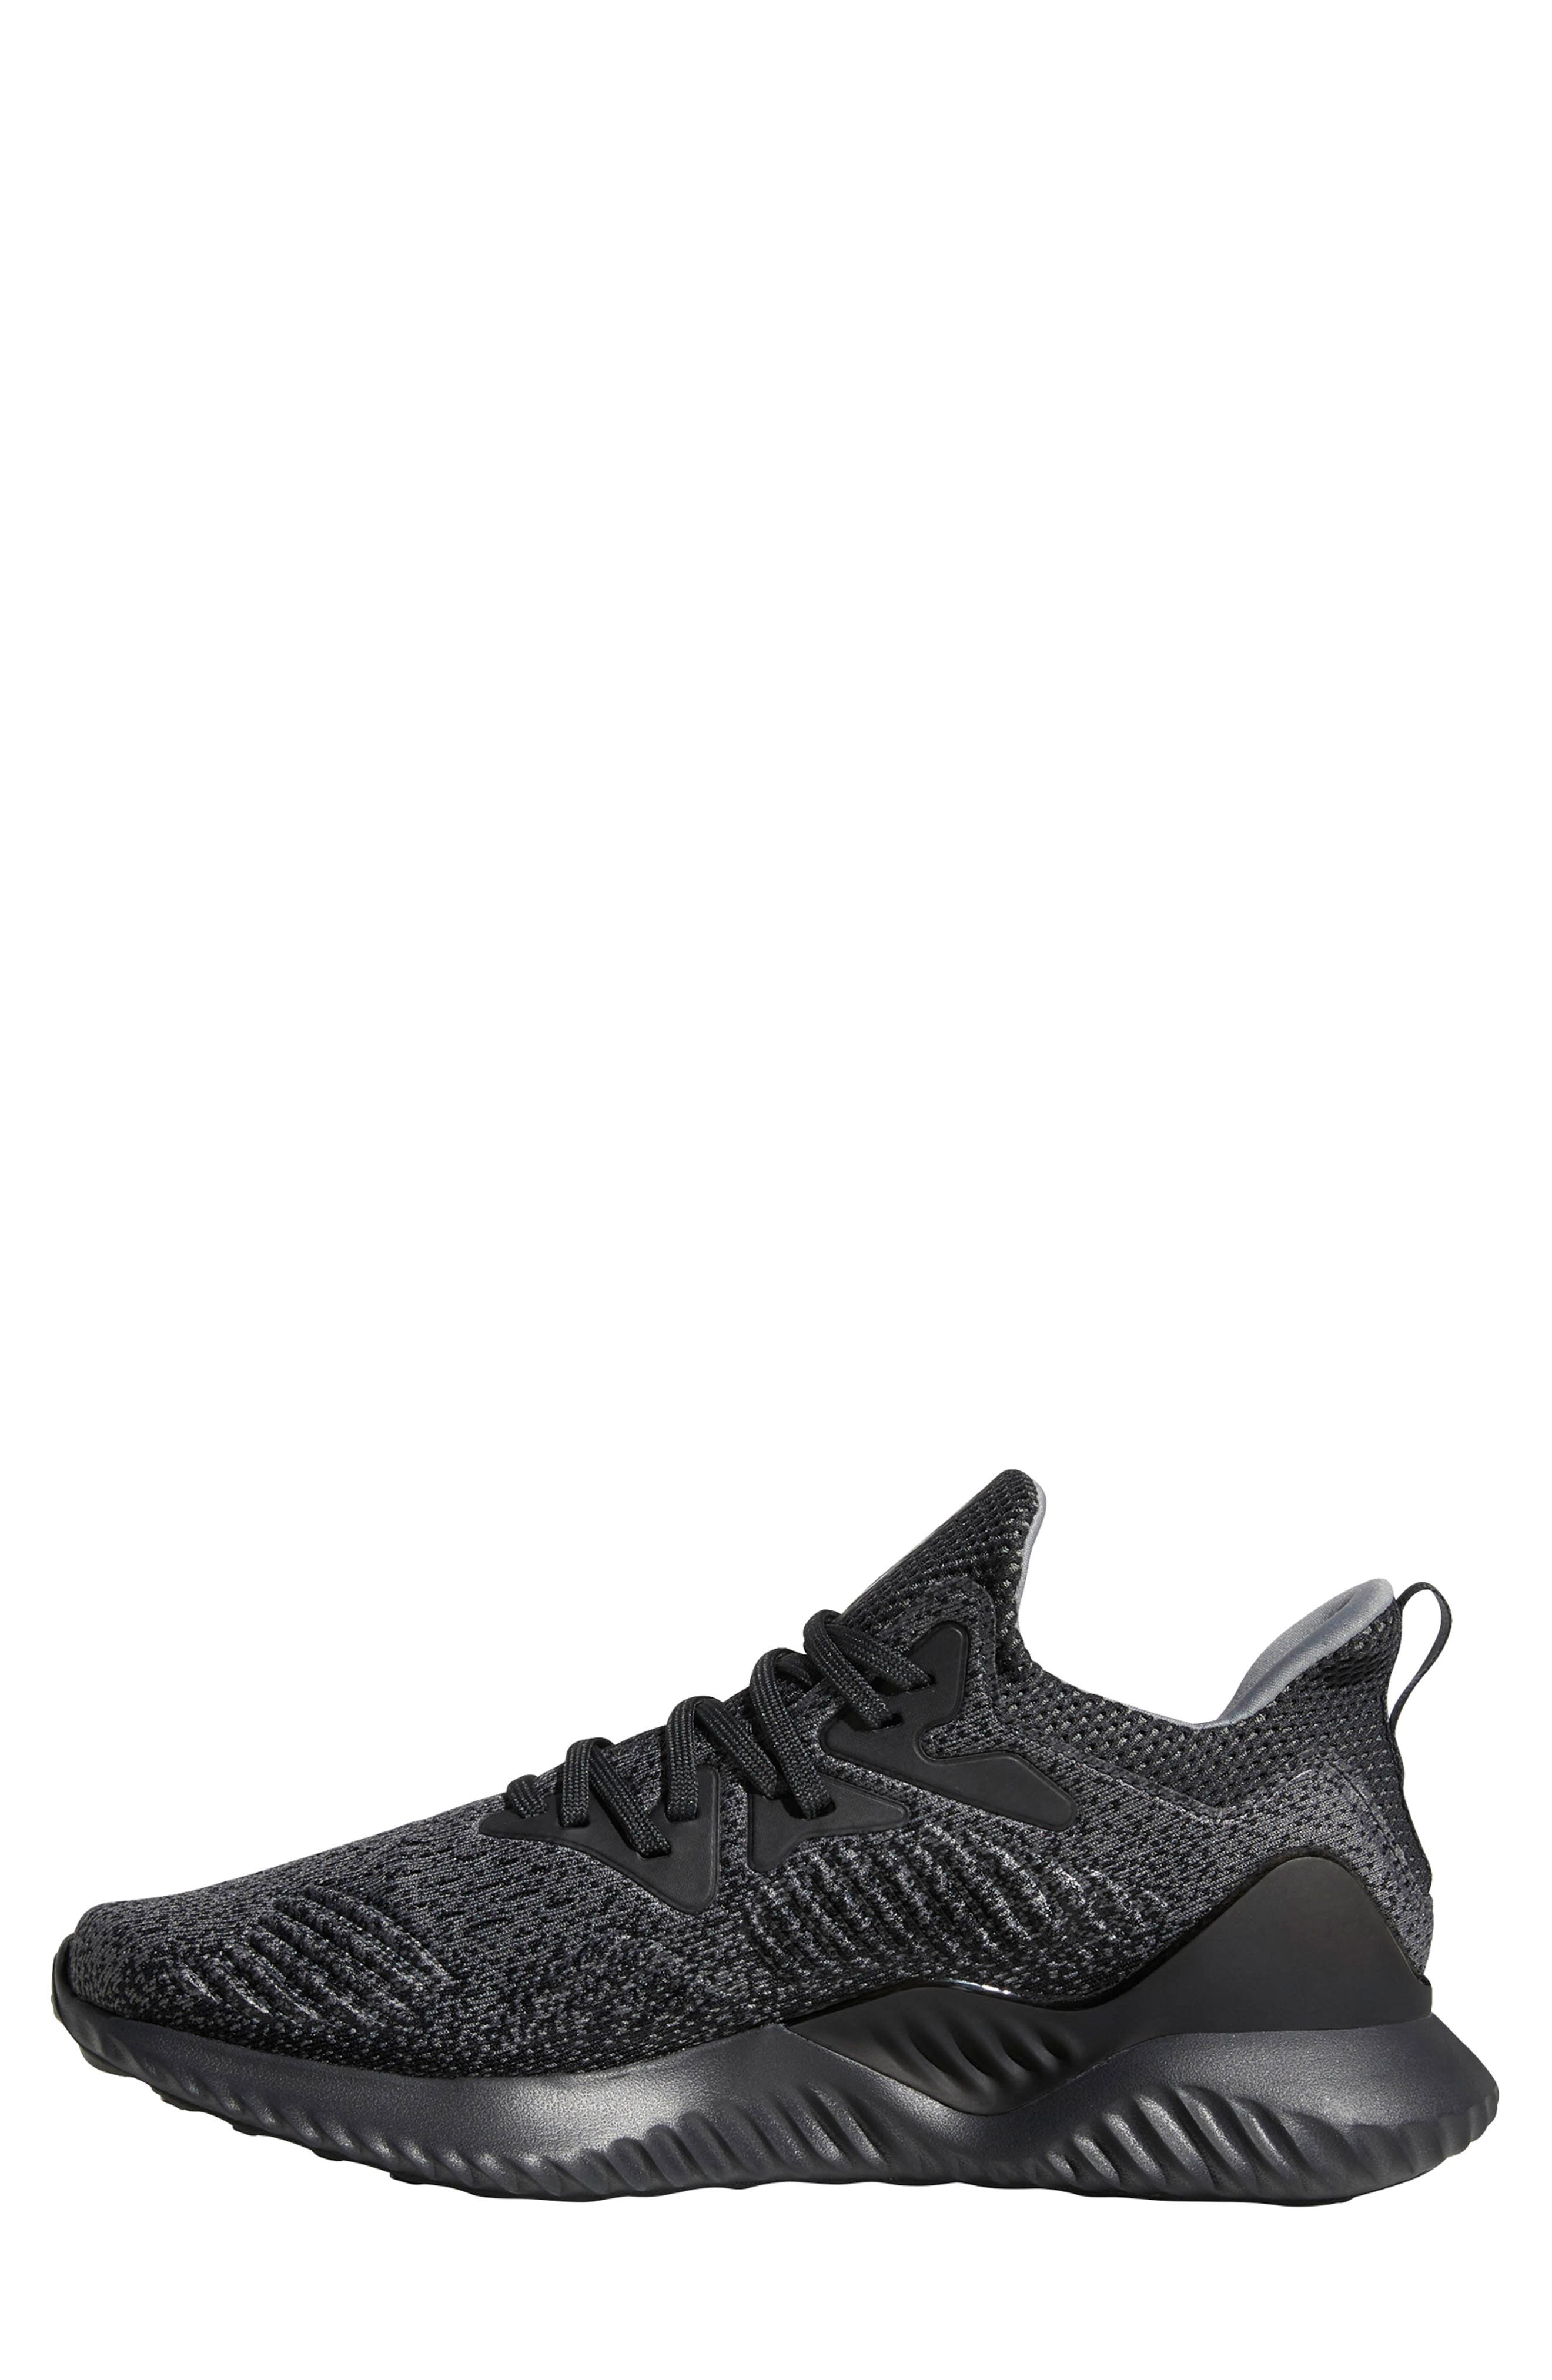 AlphaBounce Beyond Knit Running Shoe,                             Alternate thumbnail 10, color,                             099